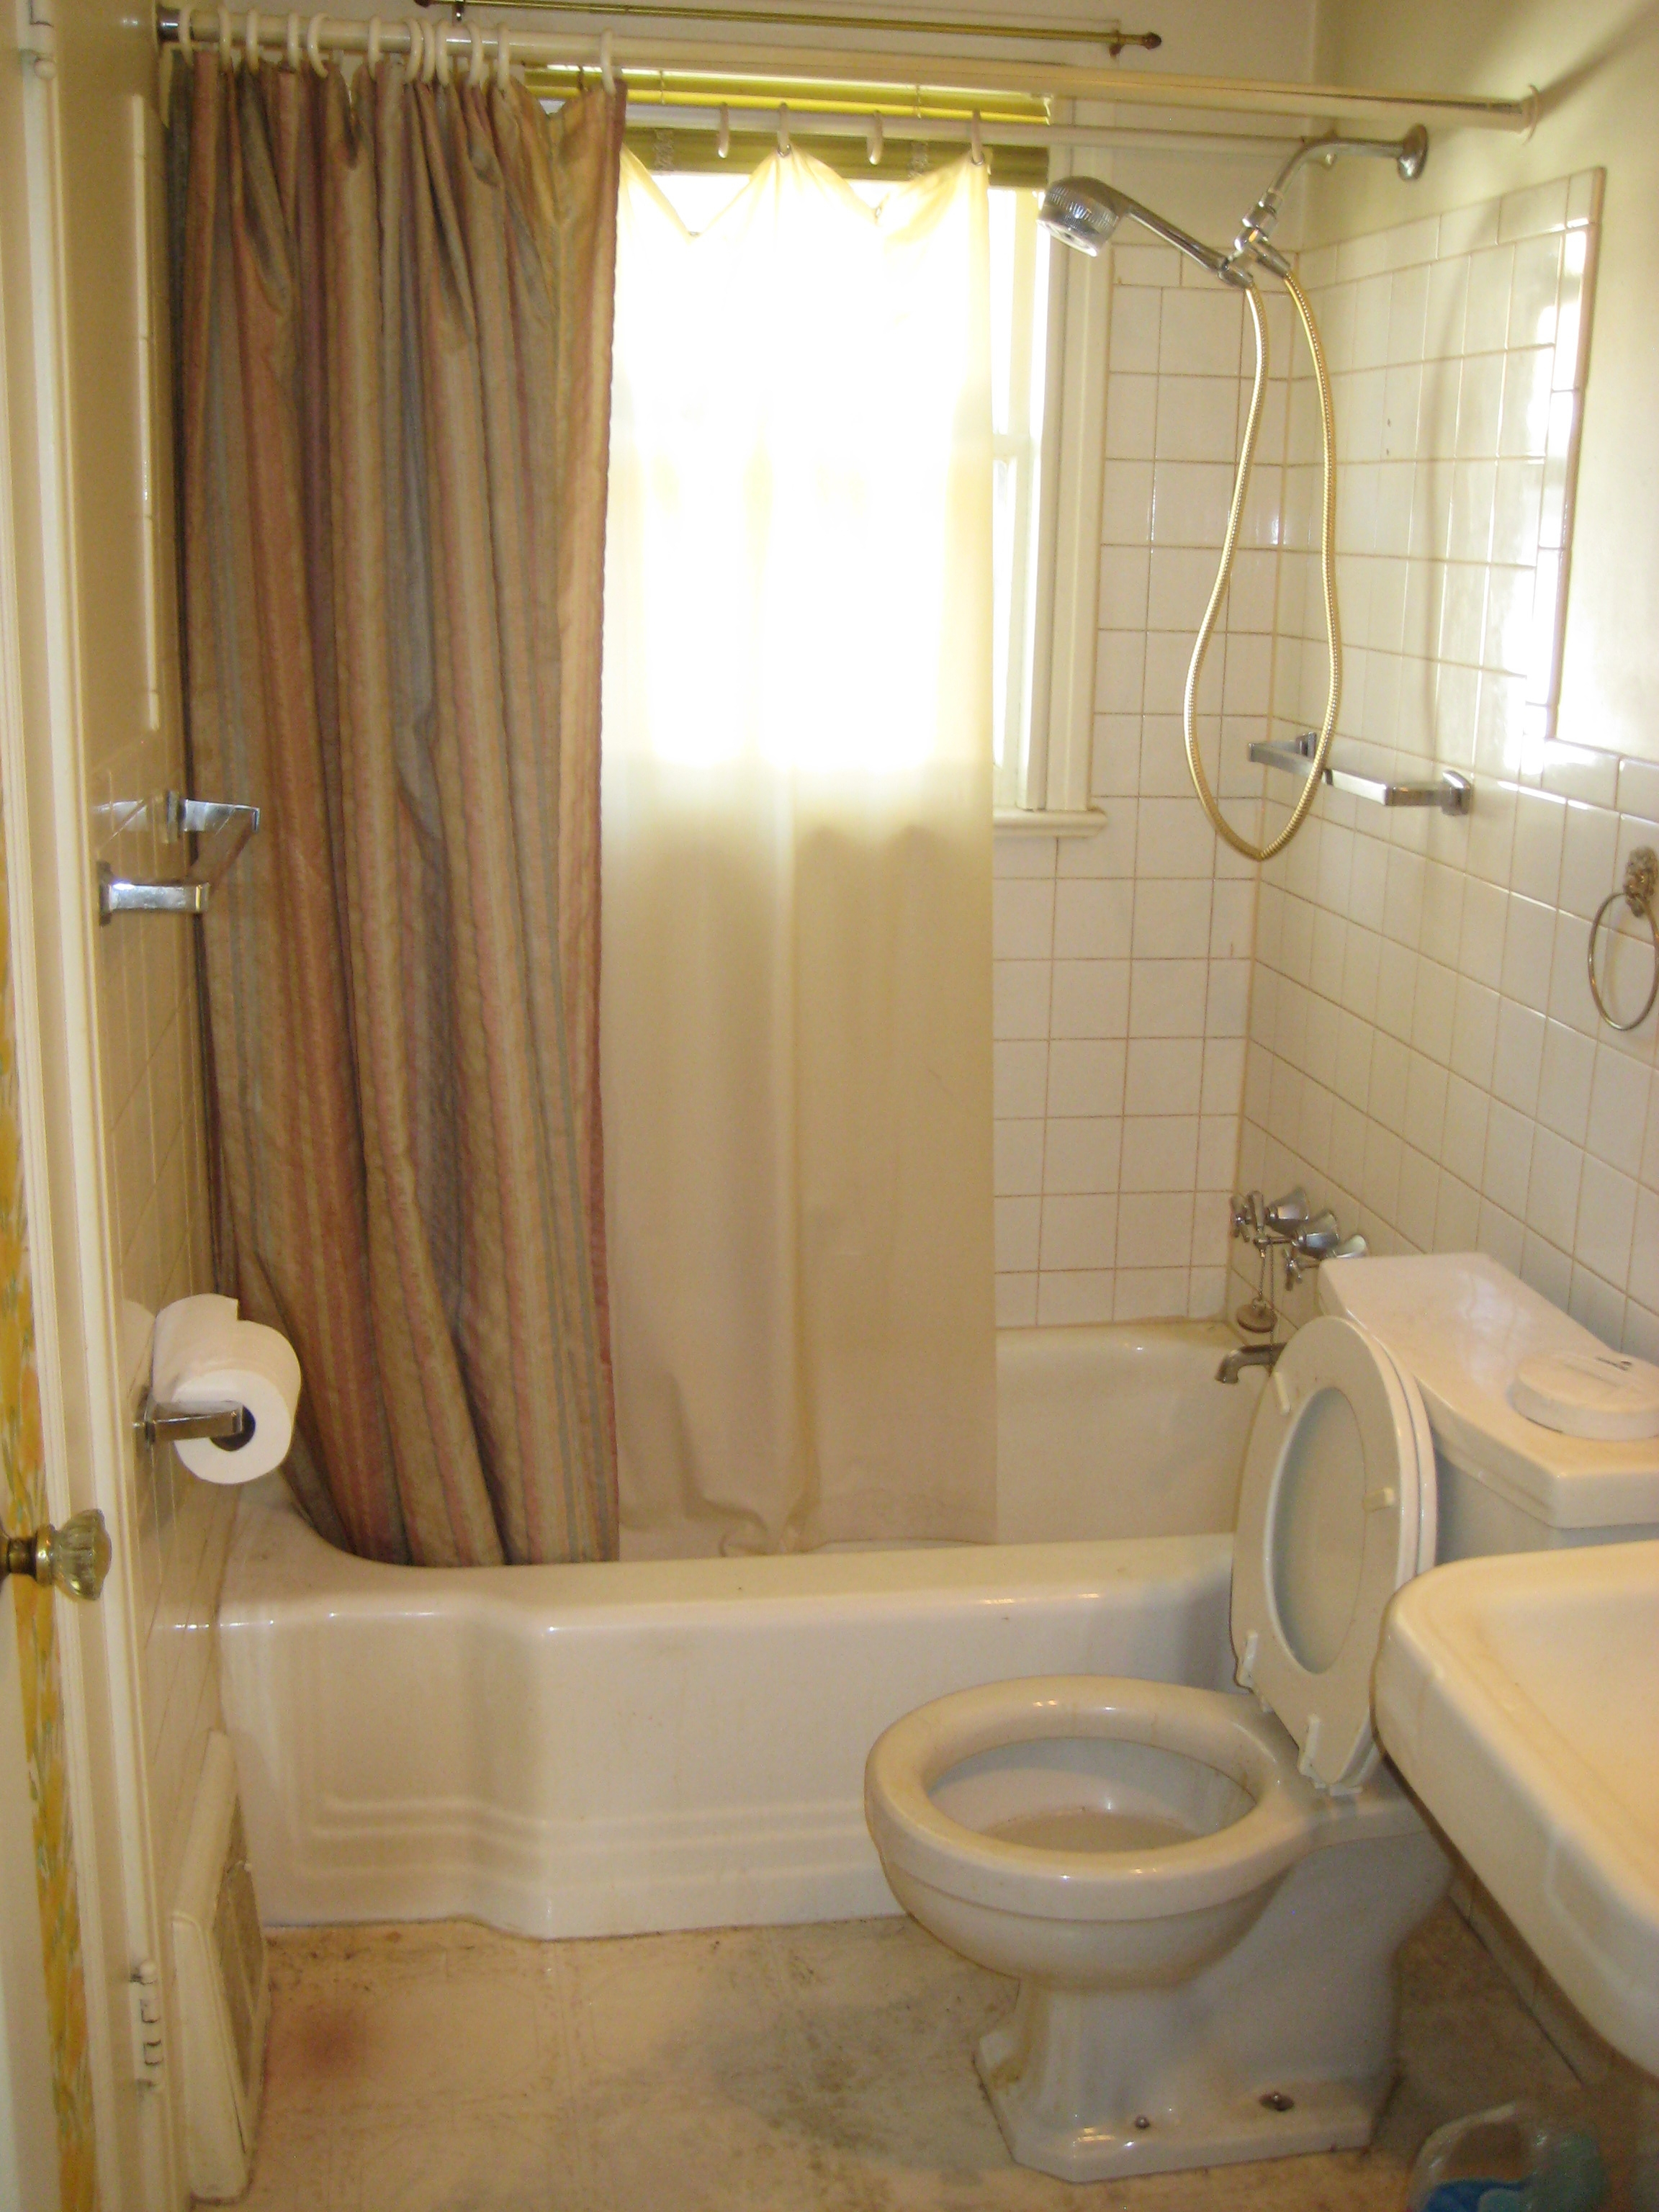 Shower Curtain And Window Curtain Sets Shower Curtain Ideas within measurements 2304 X 3072